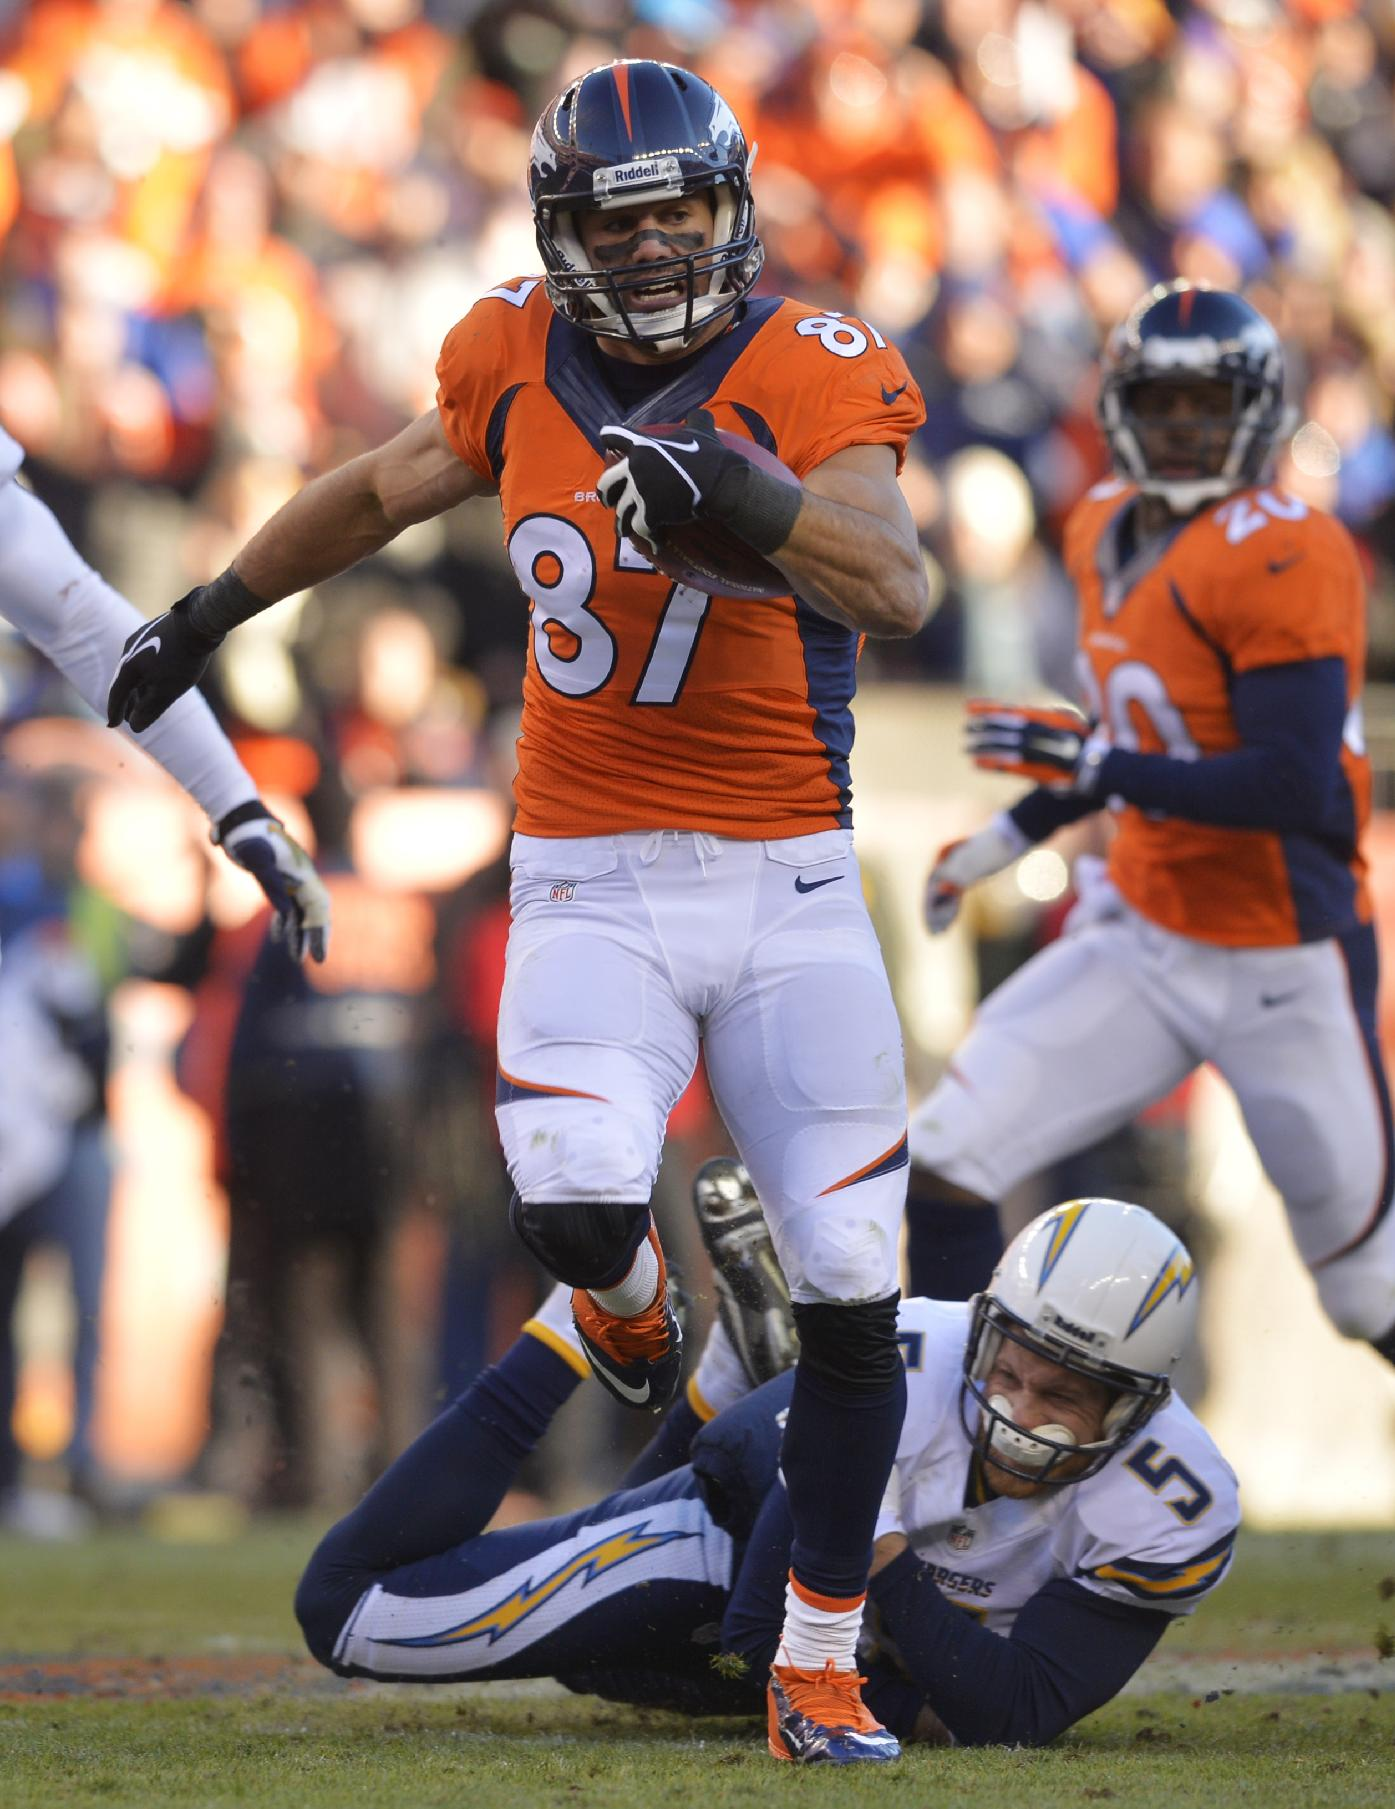 Welker's return helps Broncos beat Chargers 24-17